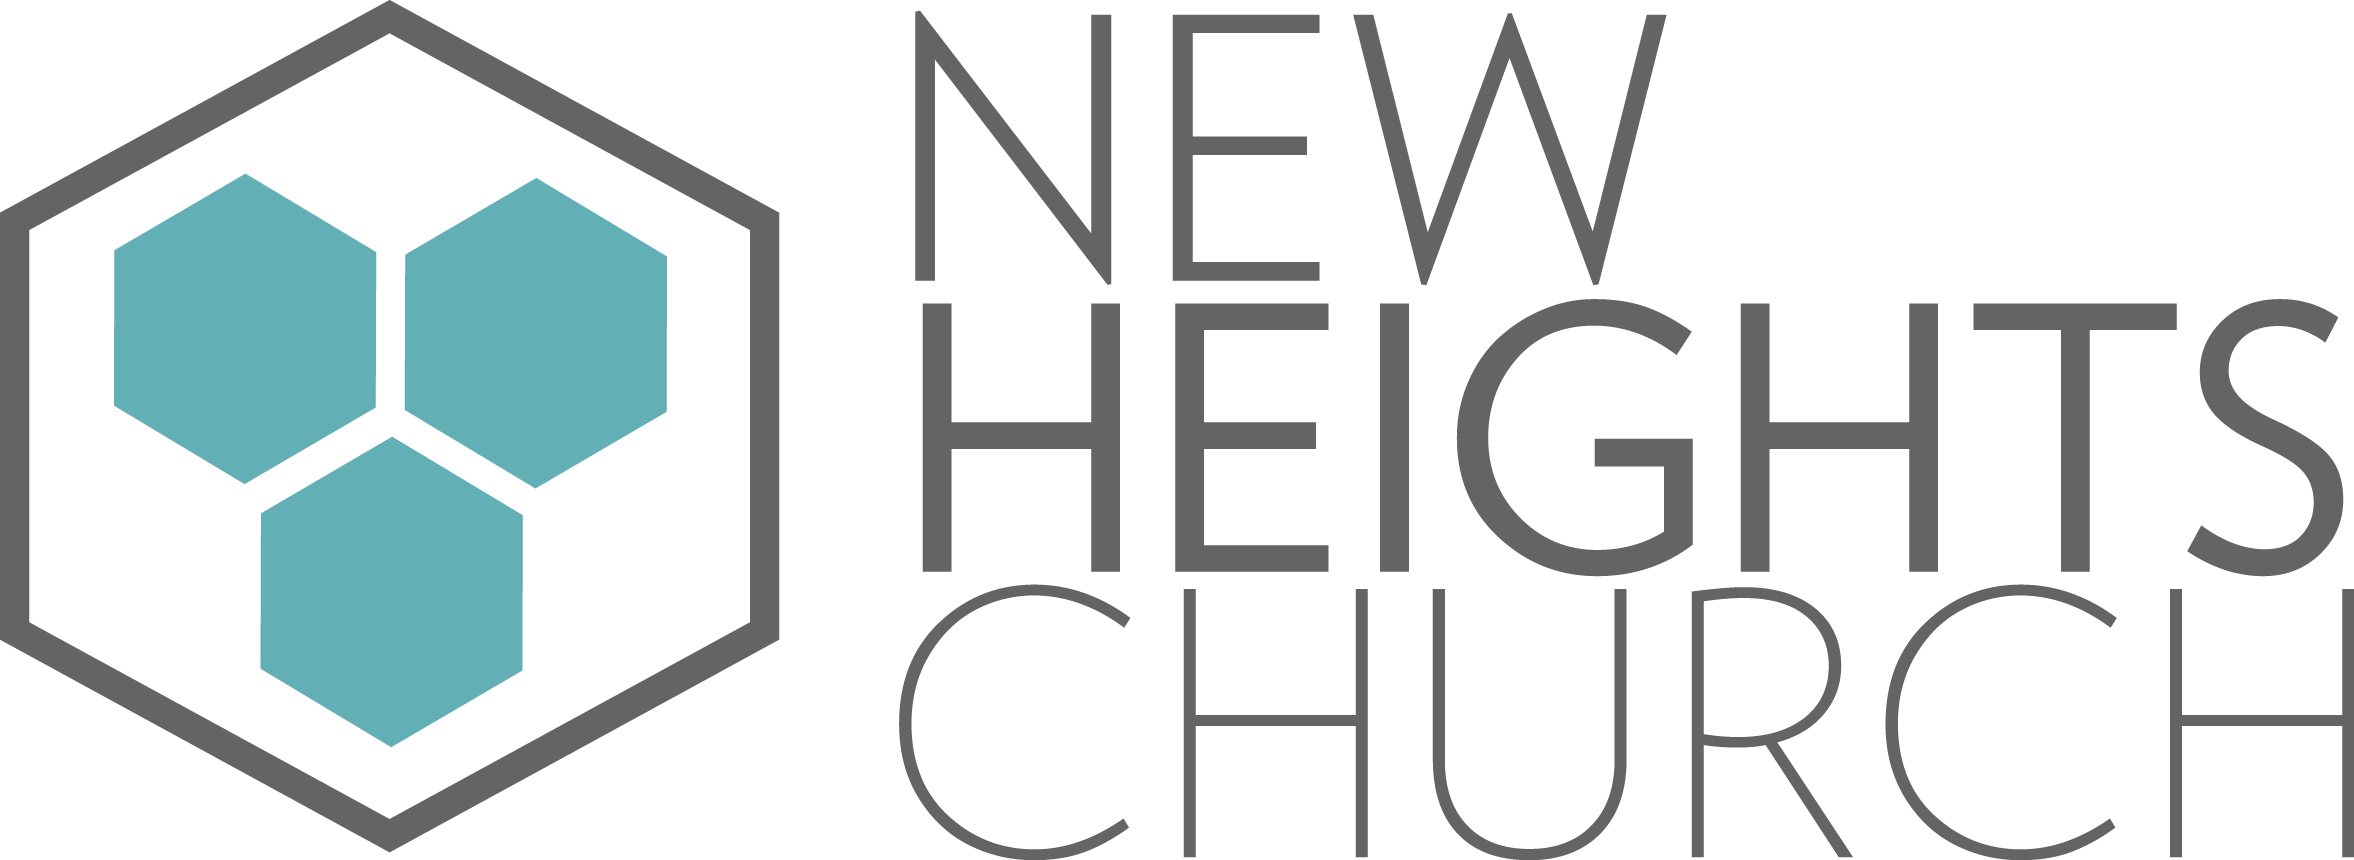 Rebranding - I rebranded our church's logo to reinforce the direction and vision of our church. Acts 2:42-47 describes the effectiveness of the early church. At New Heights, we believe there are six characteristics of a healthy spiritual community: Teaching, Fellowship, Worship, Prayer, Mission, UnityThe hexagon is a representation of this belief. The hexagons are also seen to be multiplying from one to two healthy spiritual communities symbolizing our desire to be an agent of multiplication of healthy spiritual communities in our city. There are also three hexagons representing the trinity.